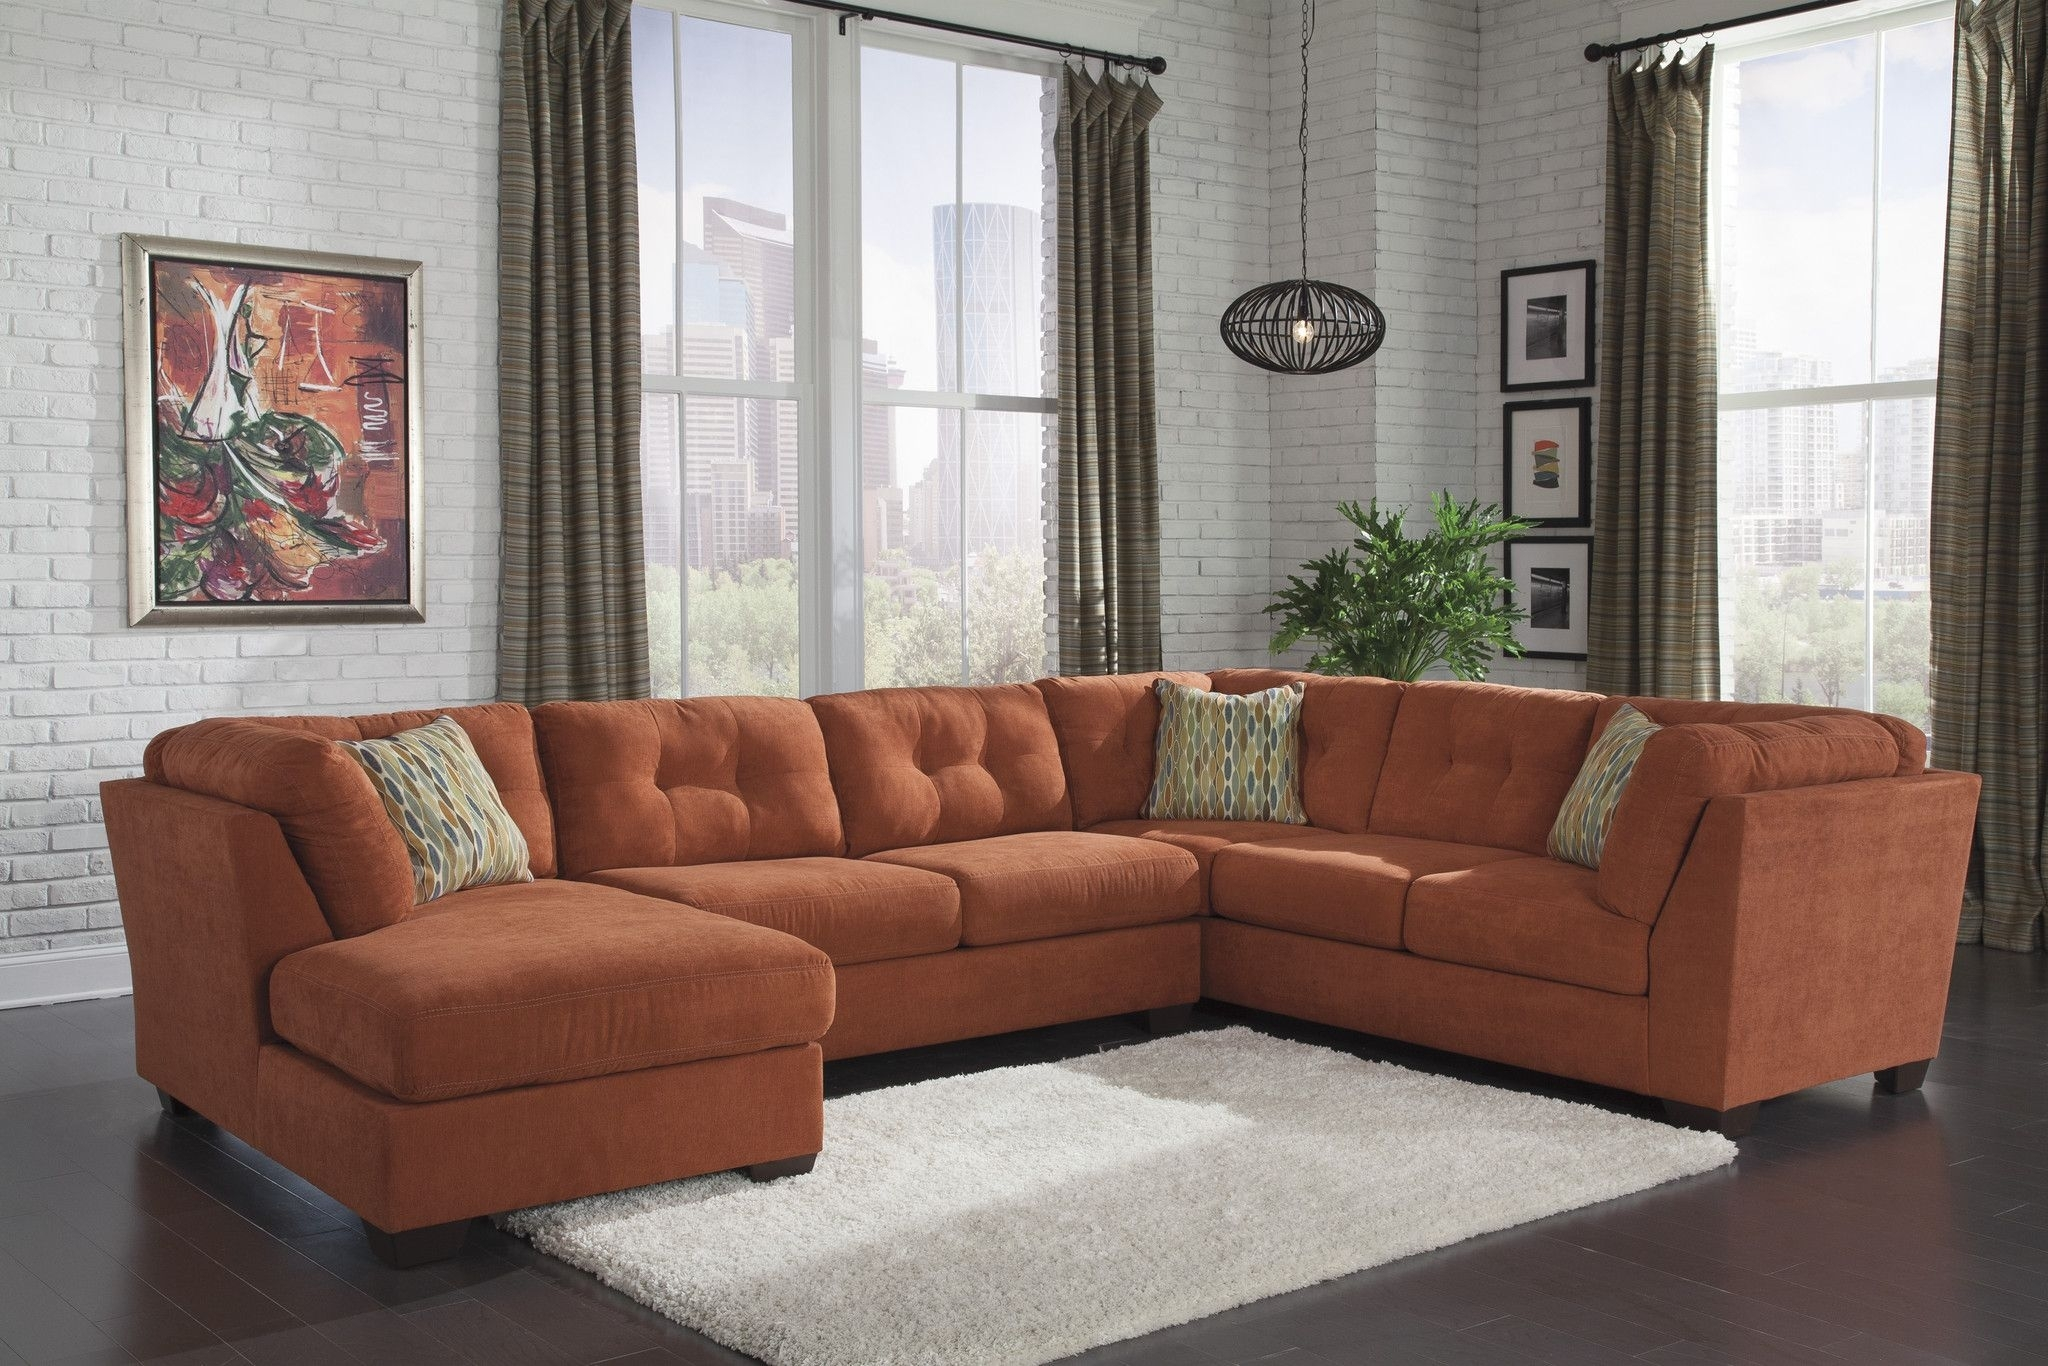 Ashley Furniture Delta City Orange Sectional Left 1970116+34+38 Pertaining To Turdur 3 Piece Sectionals With Laf Loveseat (View 19 of 25)